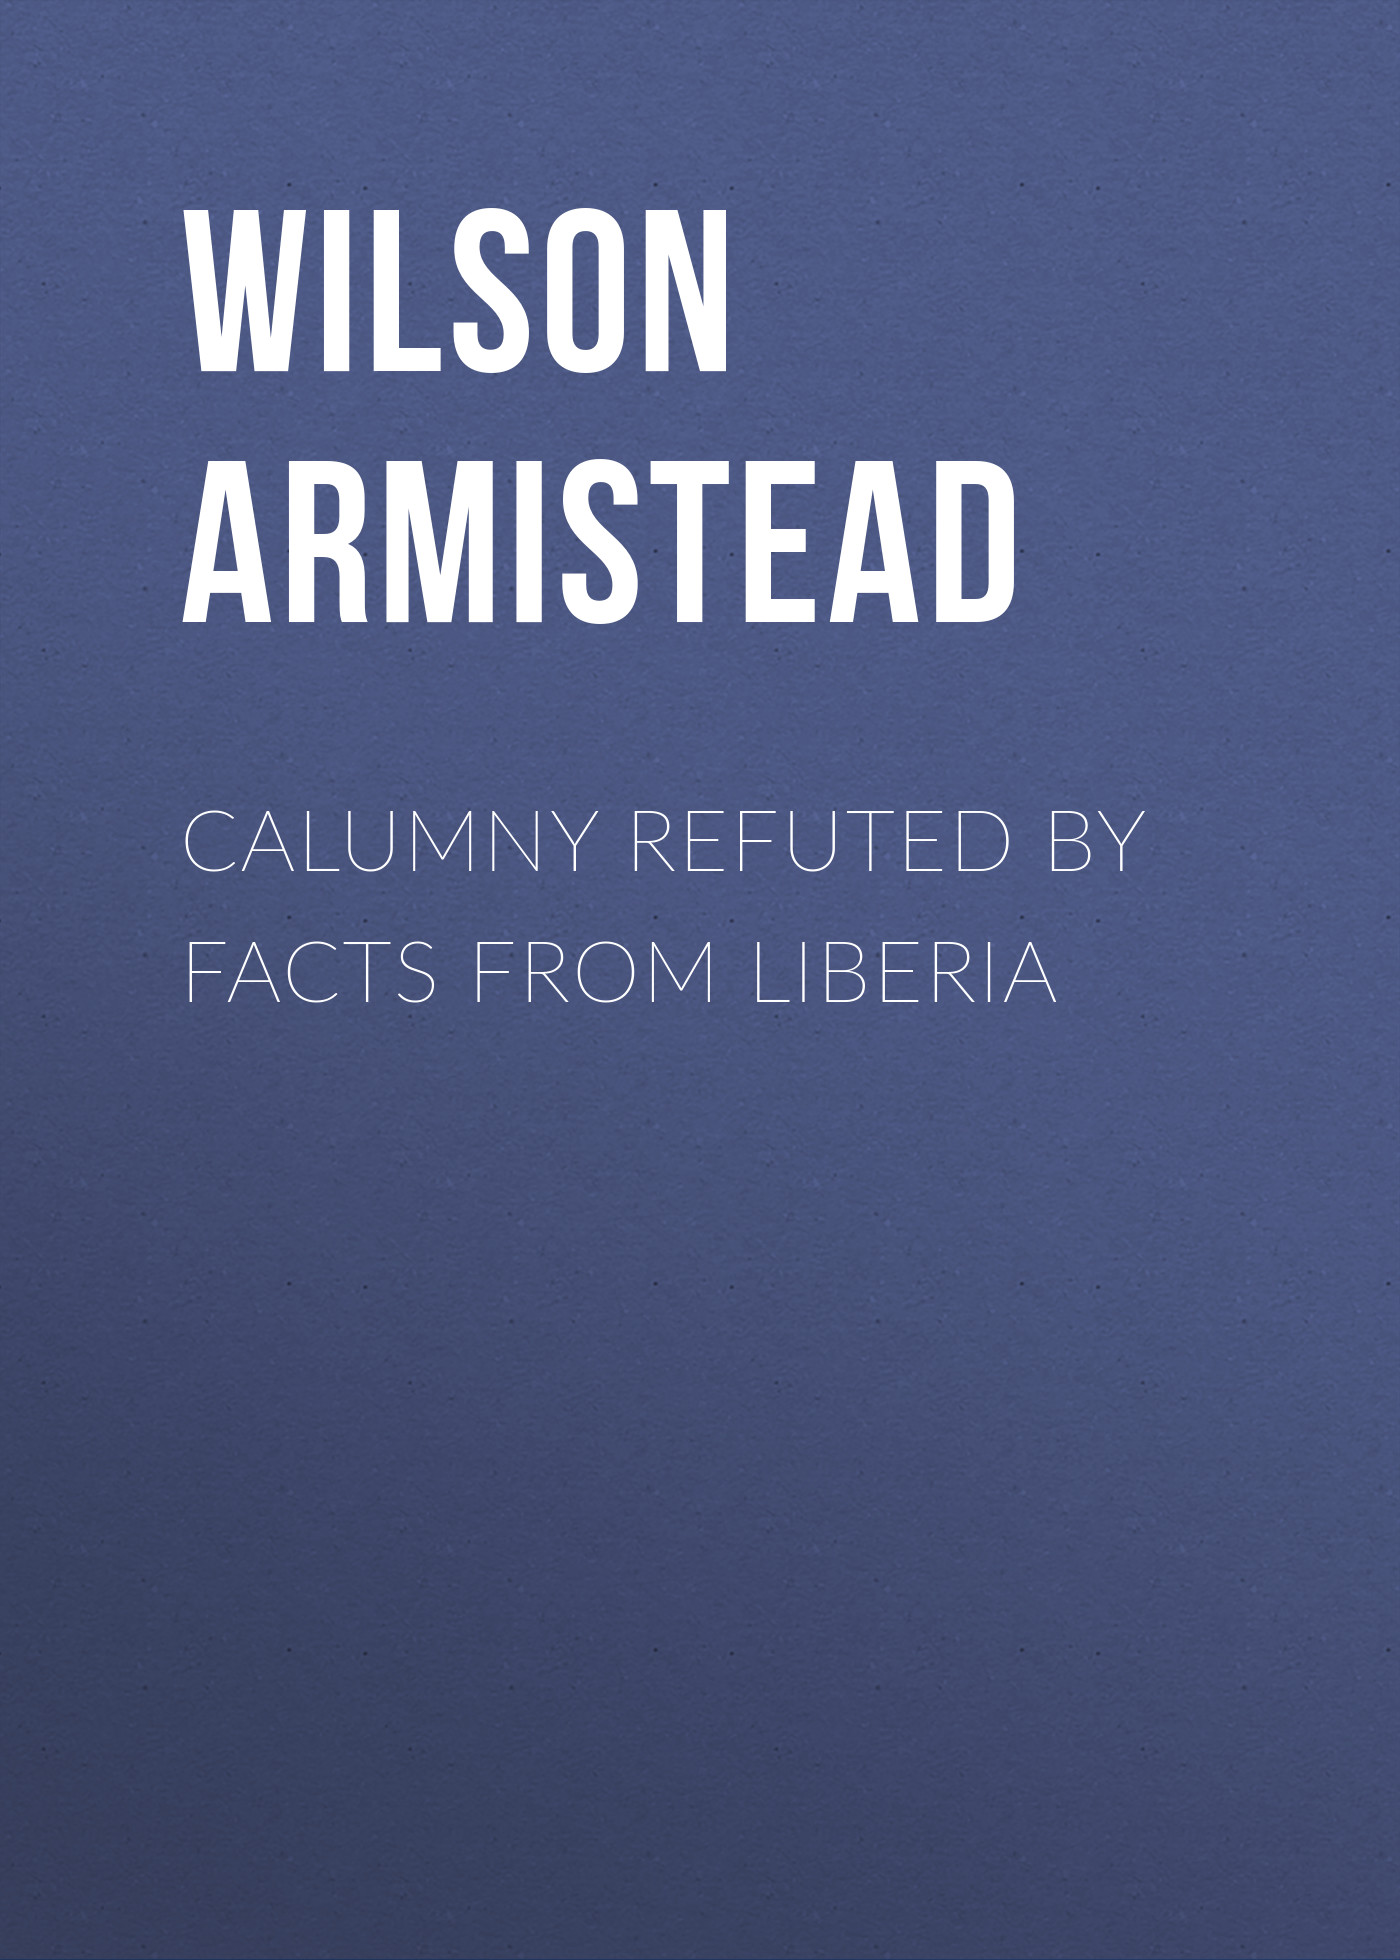 Wilson Armistead Calumny Refuted by Facts From Liberia history of liberia